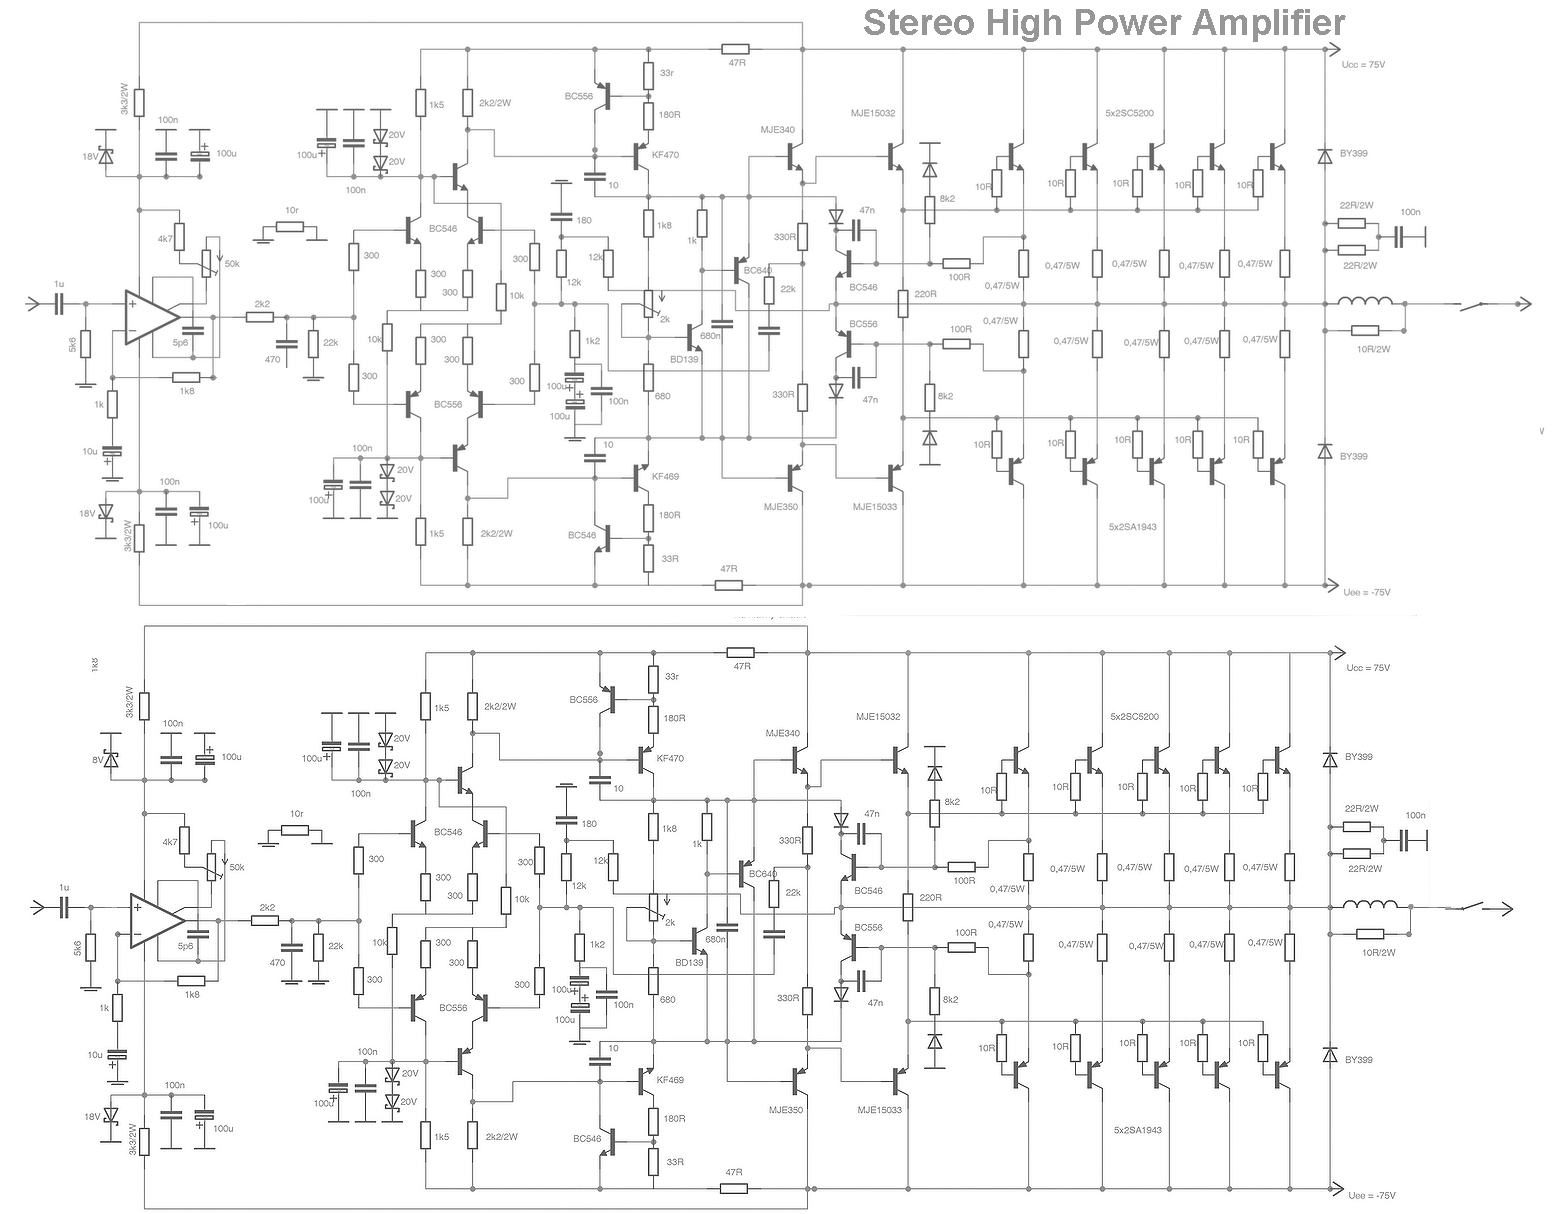 2000w power amplifier circuit diagram parts of a tree trunk stereo high audio electronic